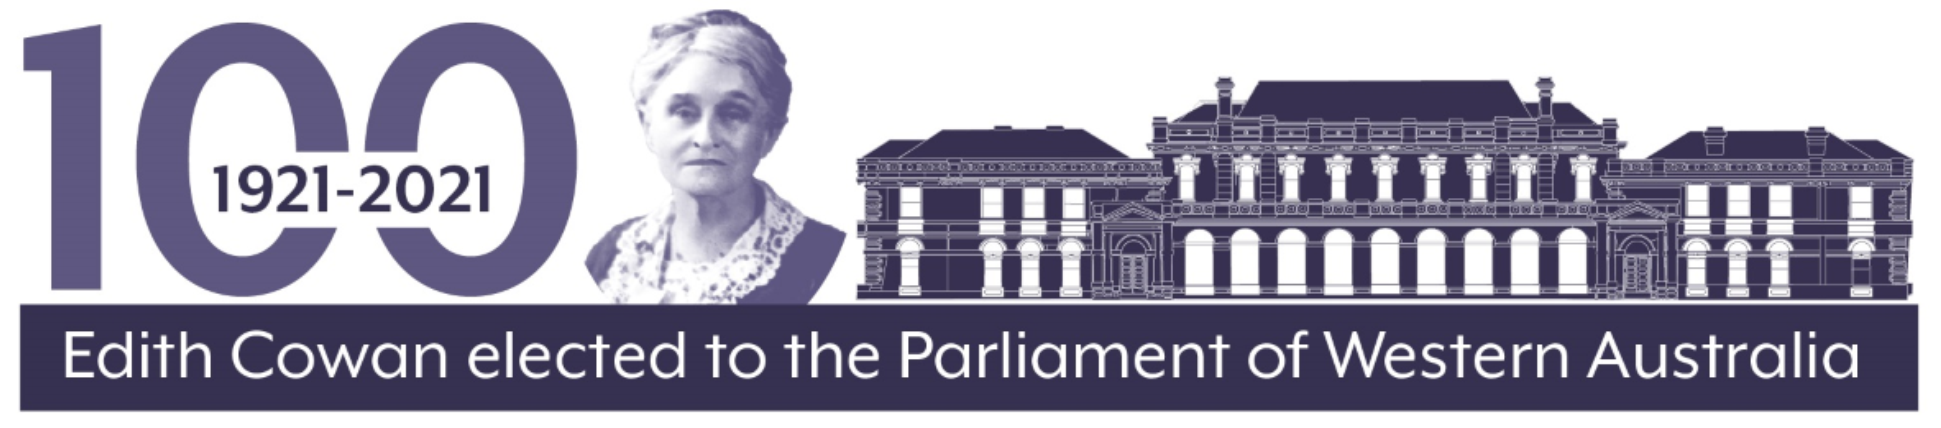 Purple banner with image of Edith Cowan next to image of parliament house